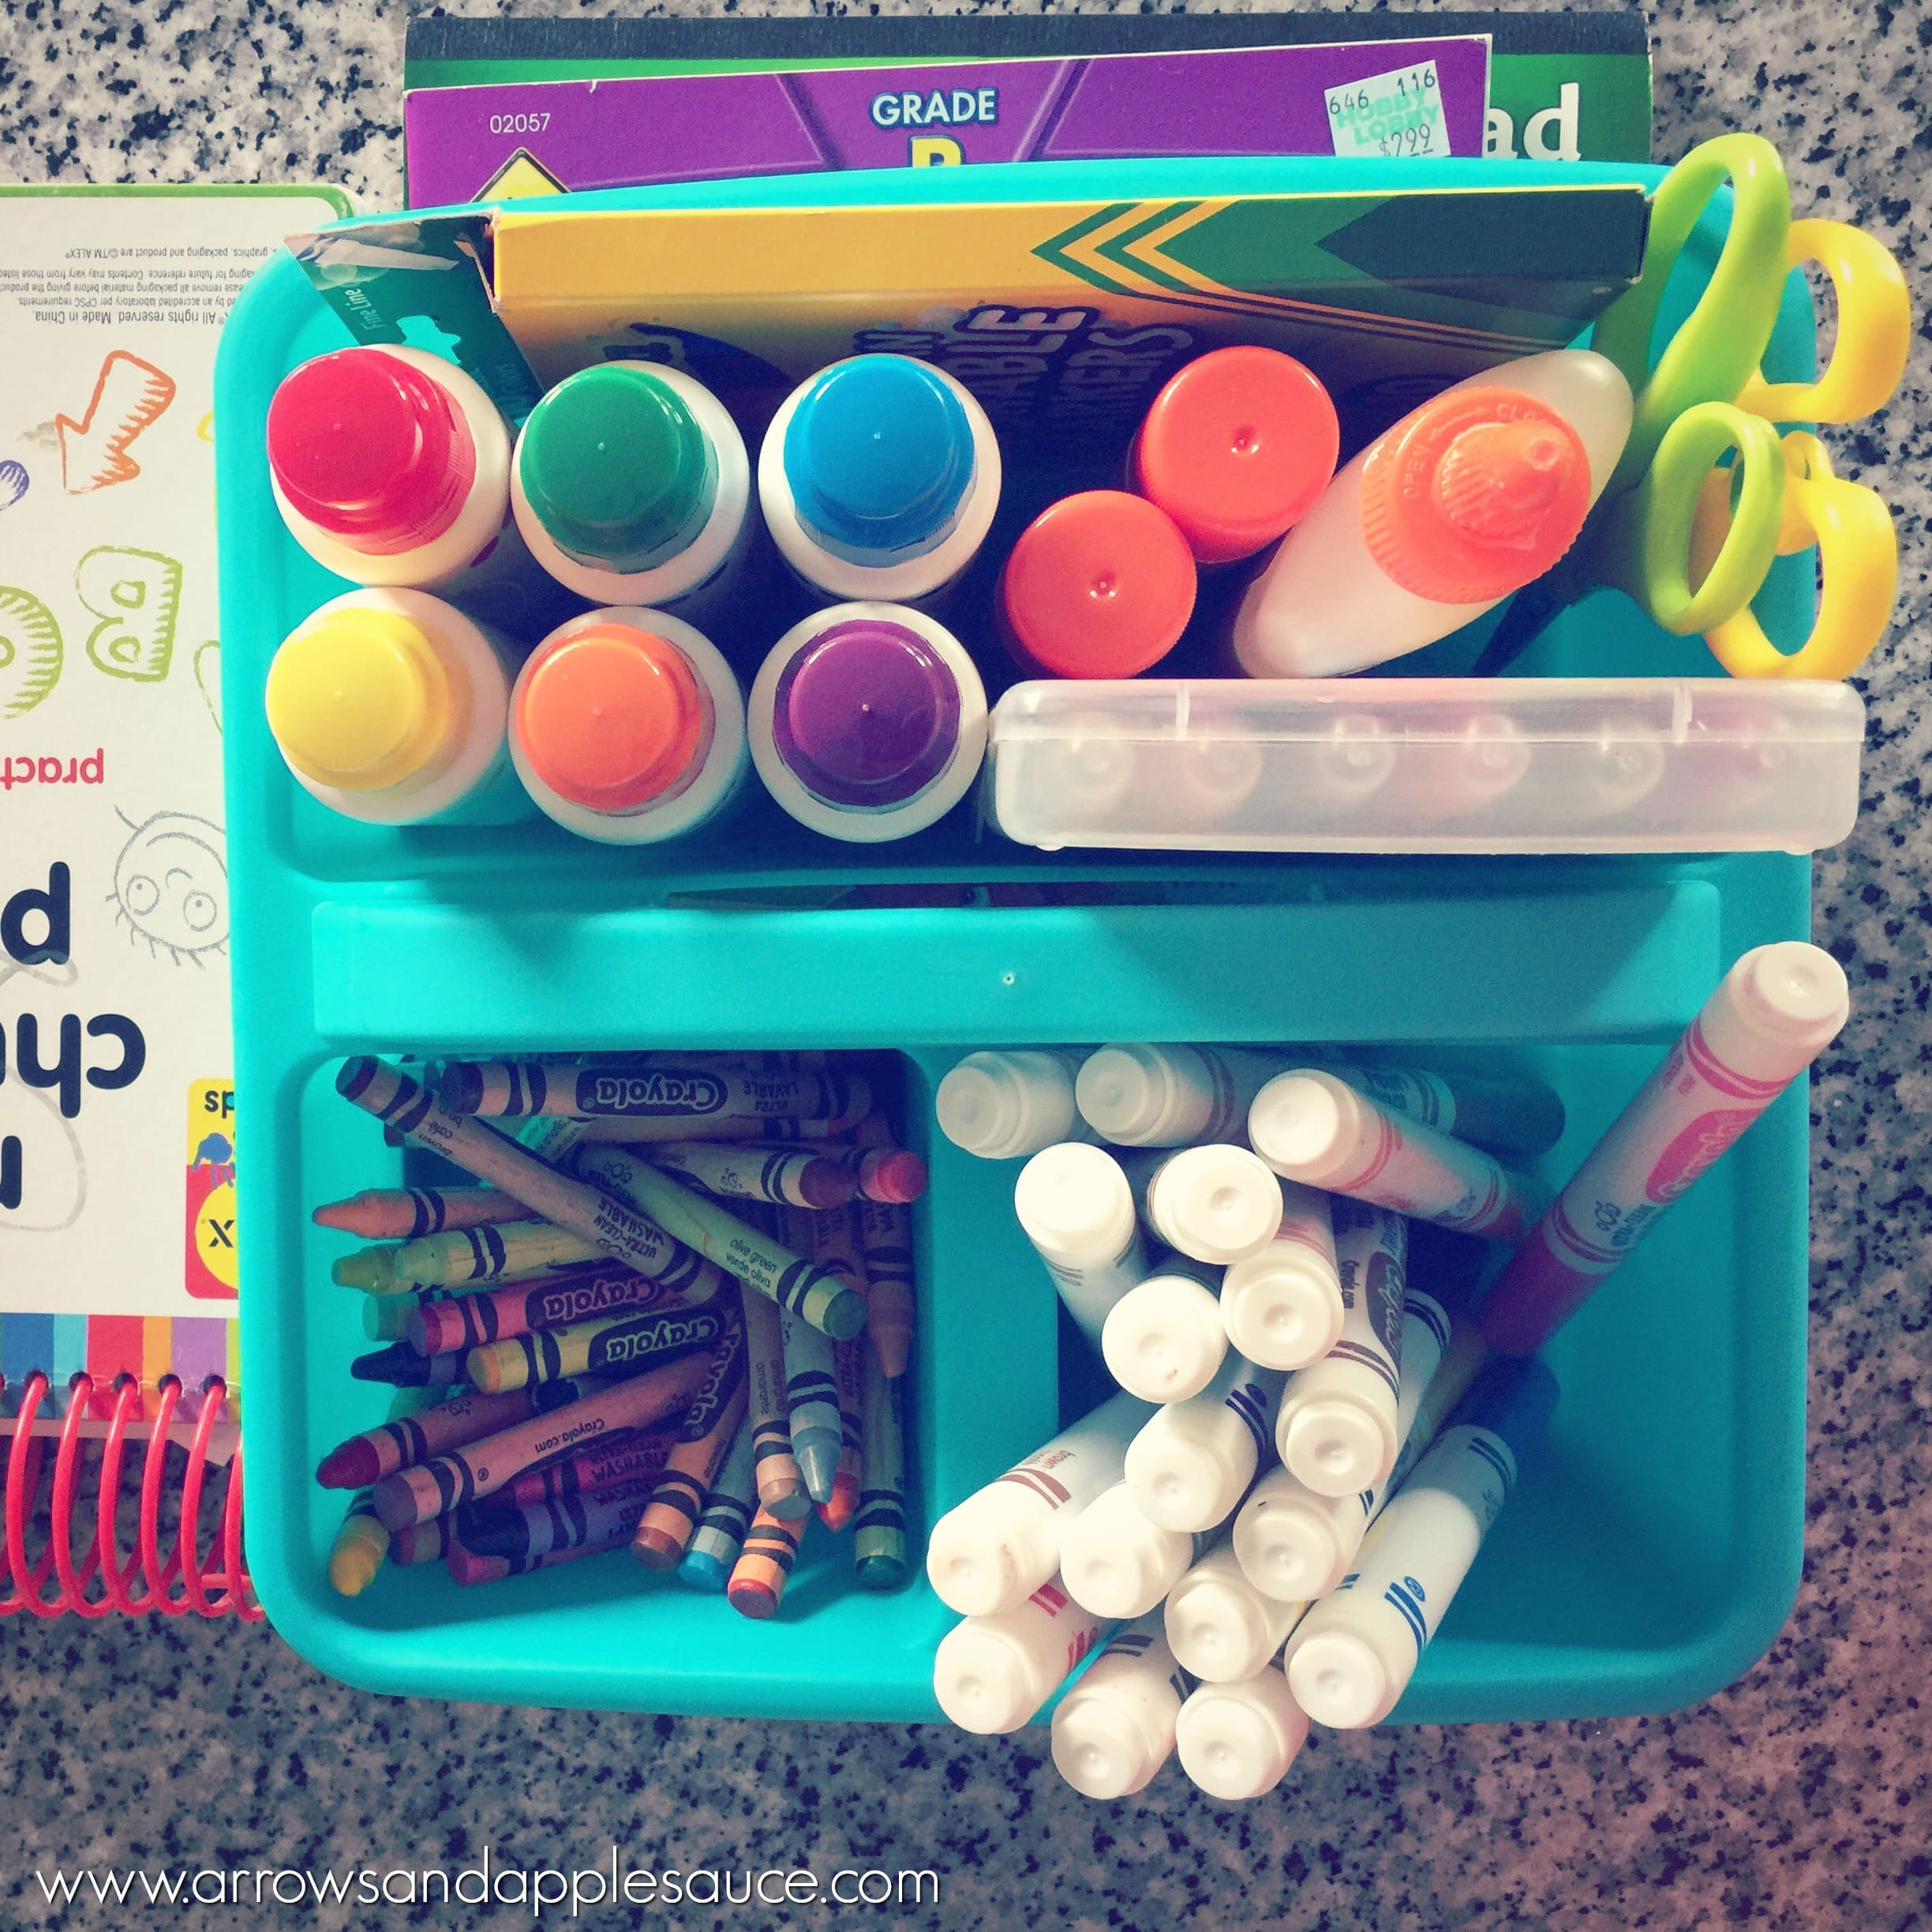 Our Favorite Homeschool Tools For Preschool - Arrows & Applesauce